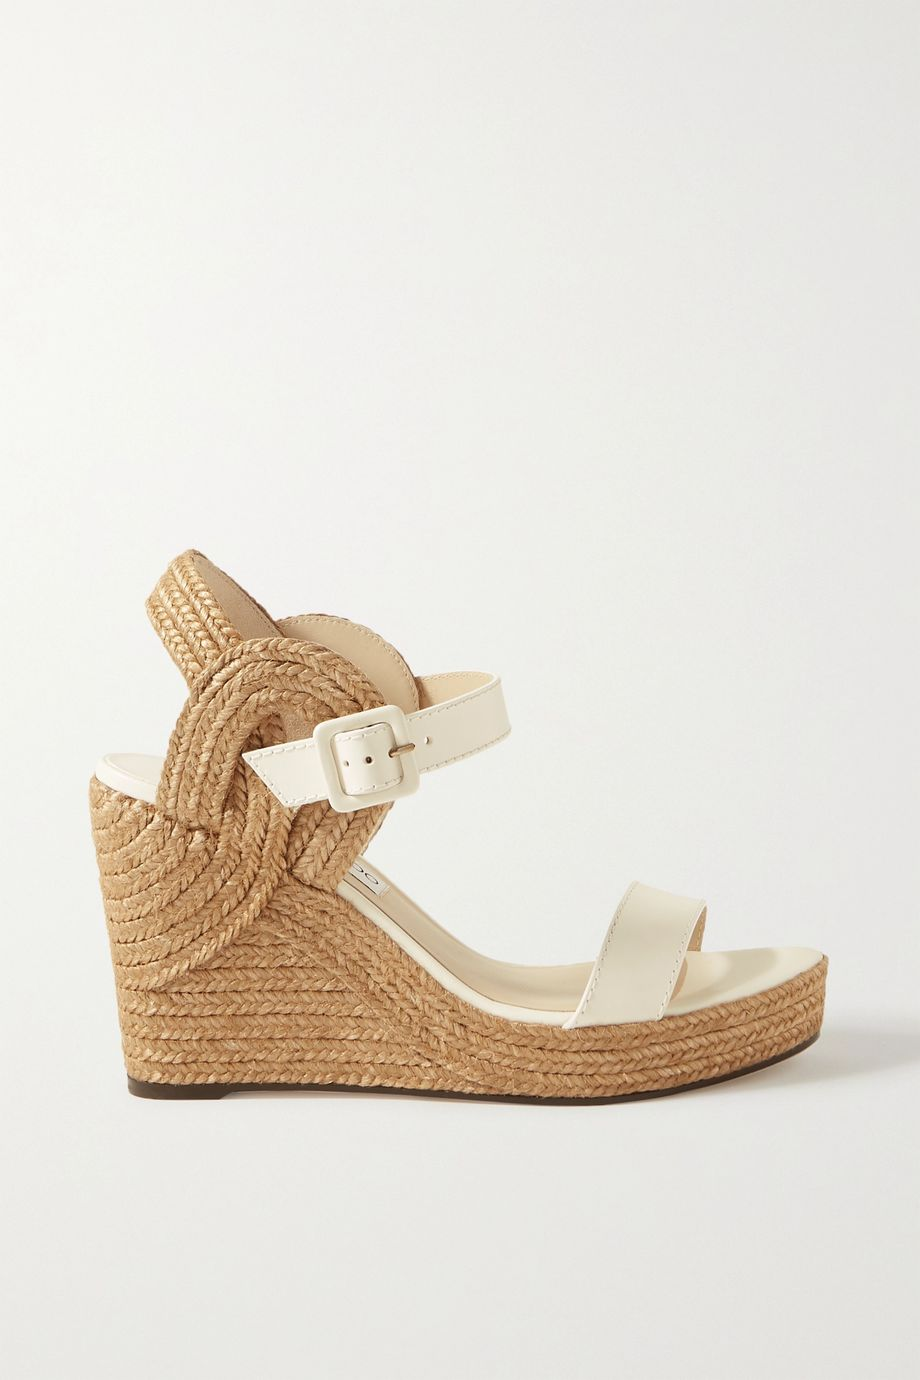 Jimmy Choo Delphi 100 leather espadrille wedge sandals